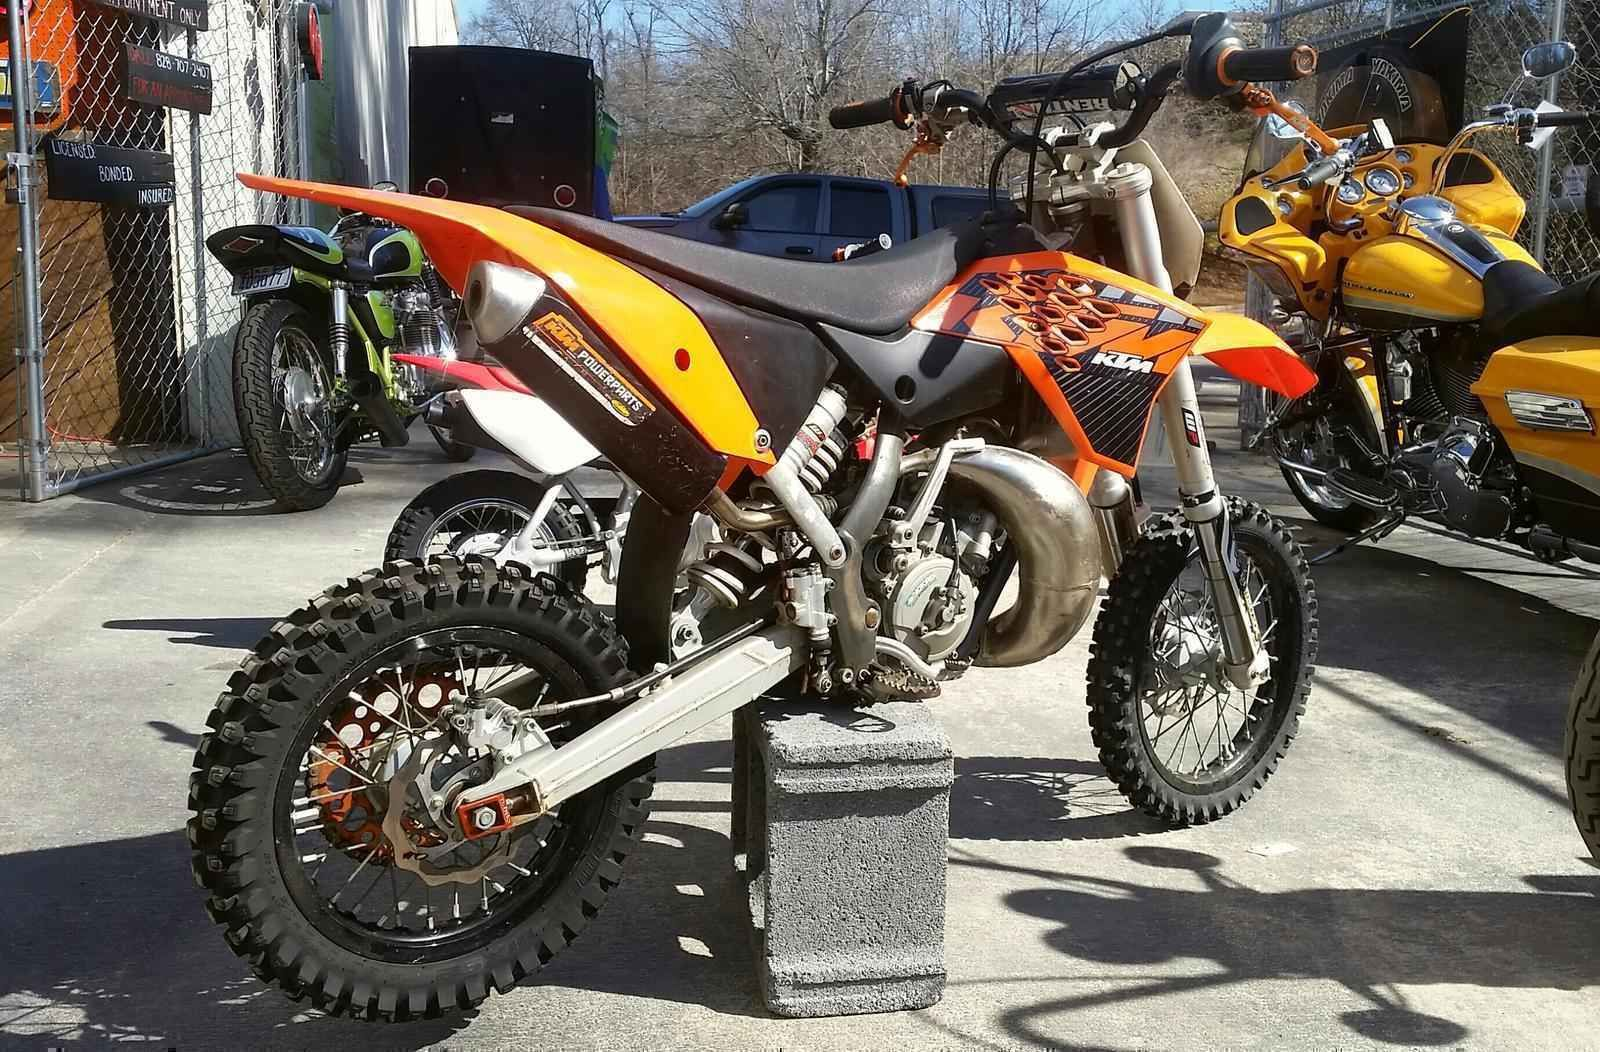 2013 KTM 65 SXS Ktm, Motorcycles for sale, Motorcycle